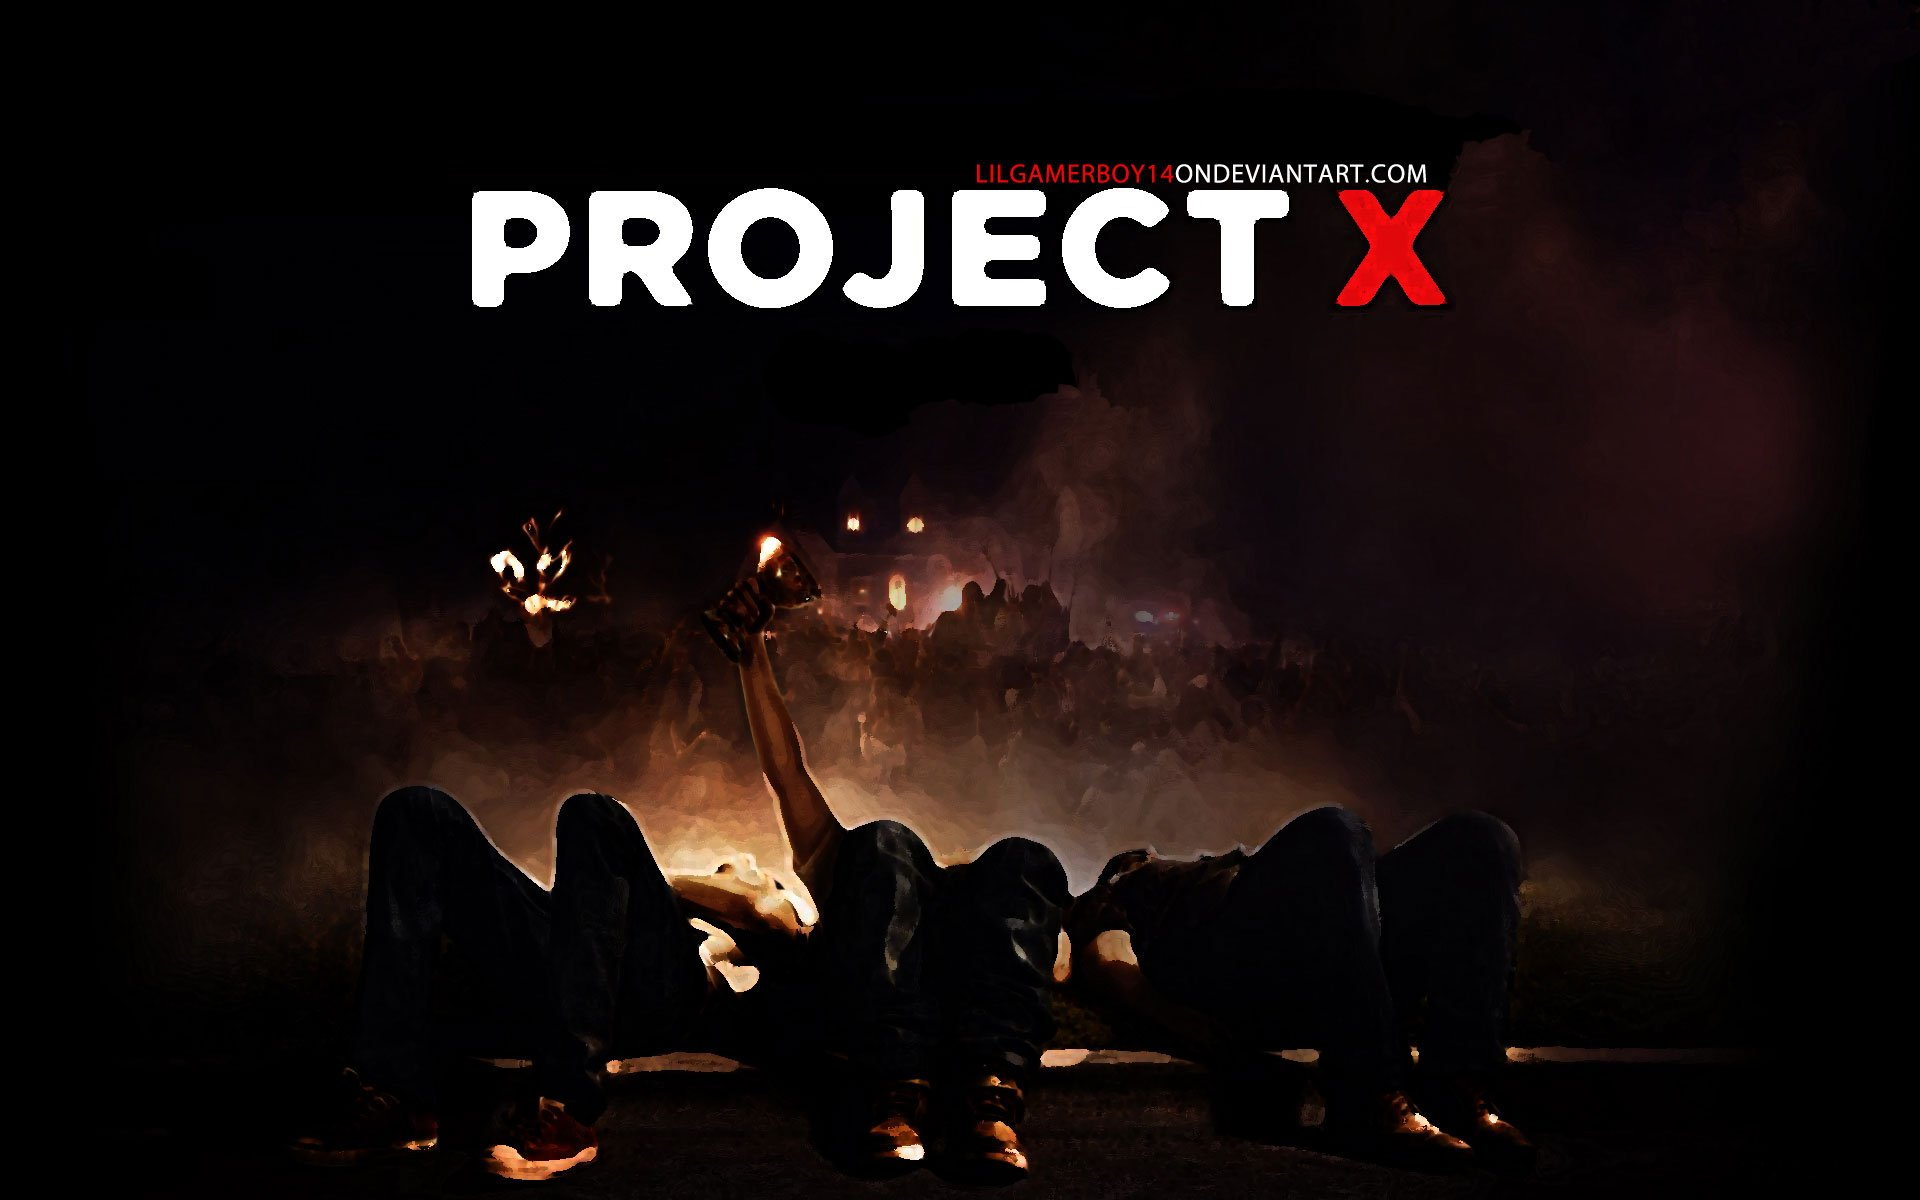 Project X Wallpapers 1080p I338IMJ   4USkY 1920x1200